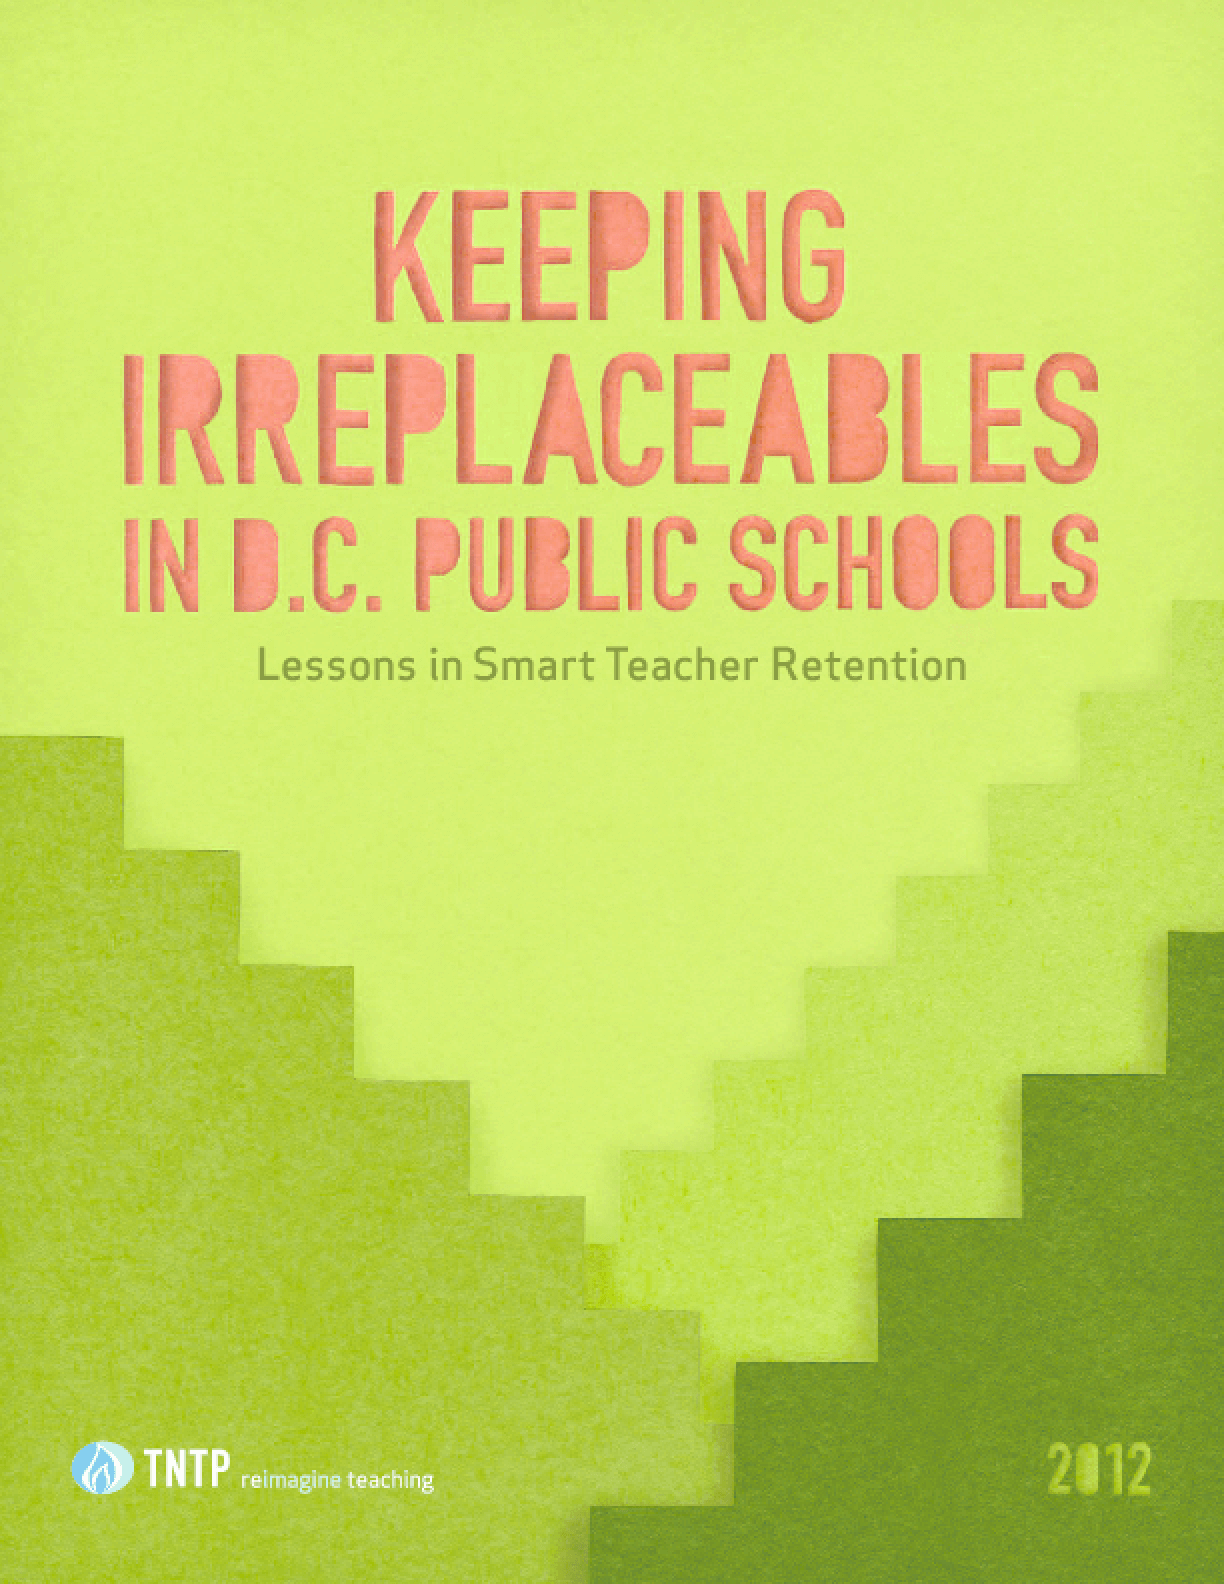 Keeping Irreplaceables in D.C. Public Schools